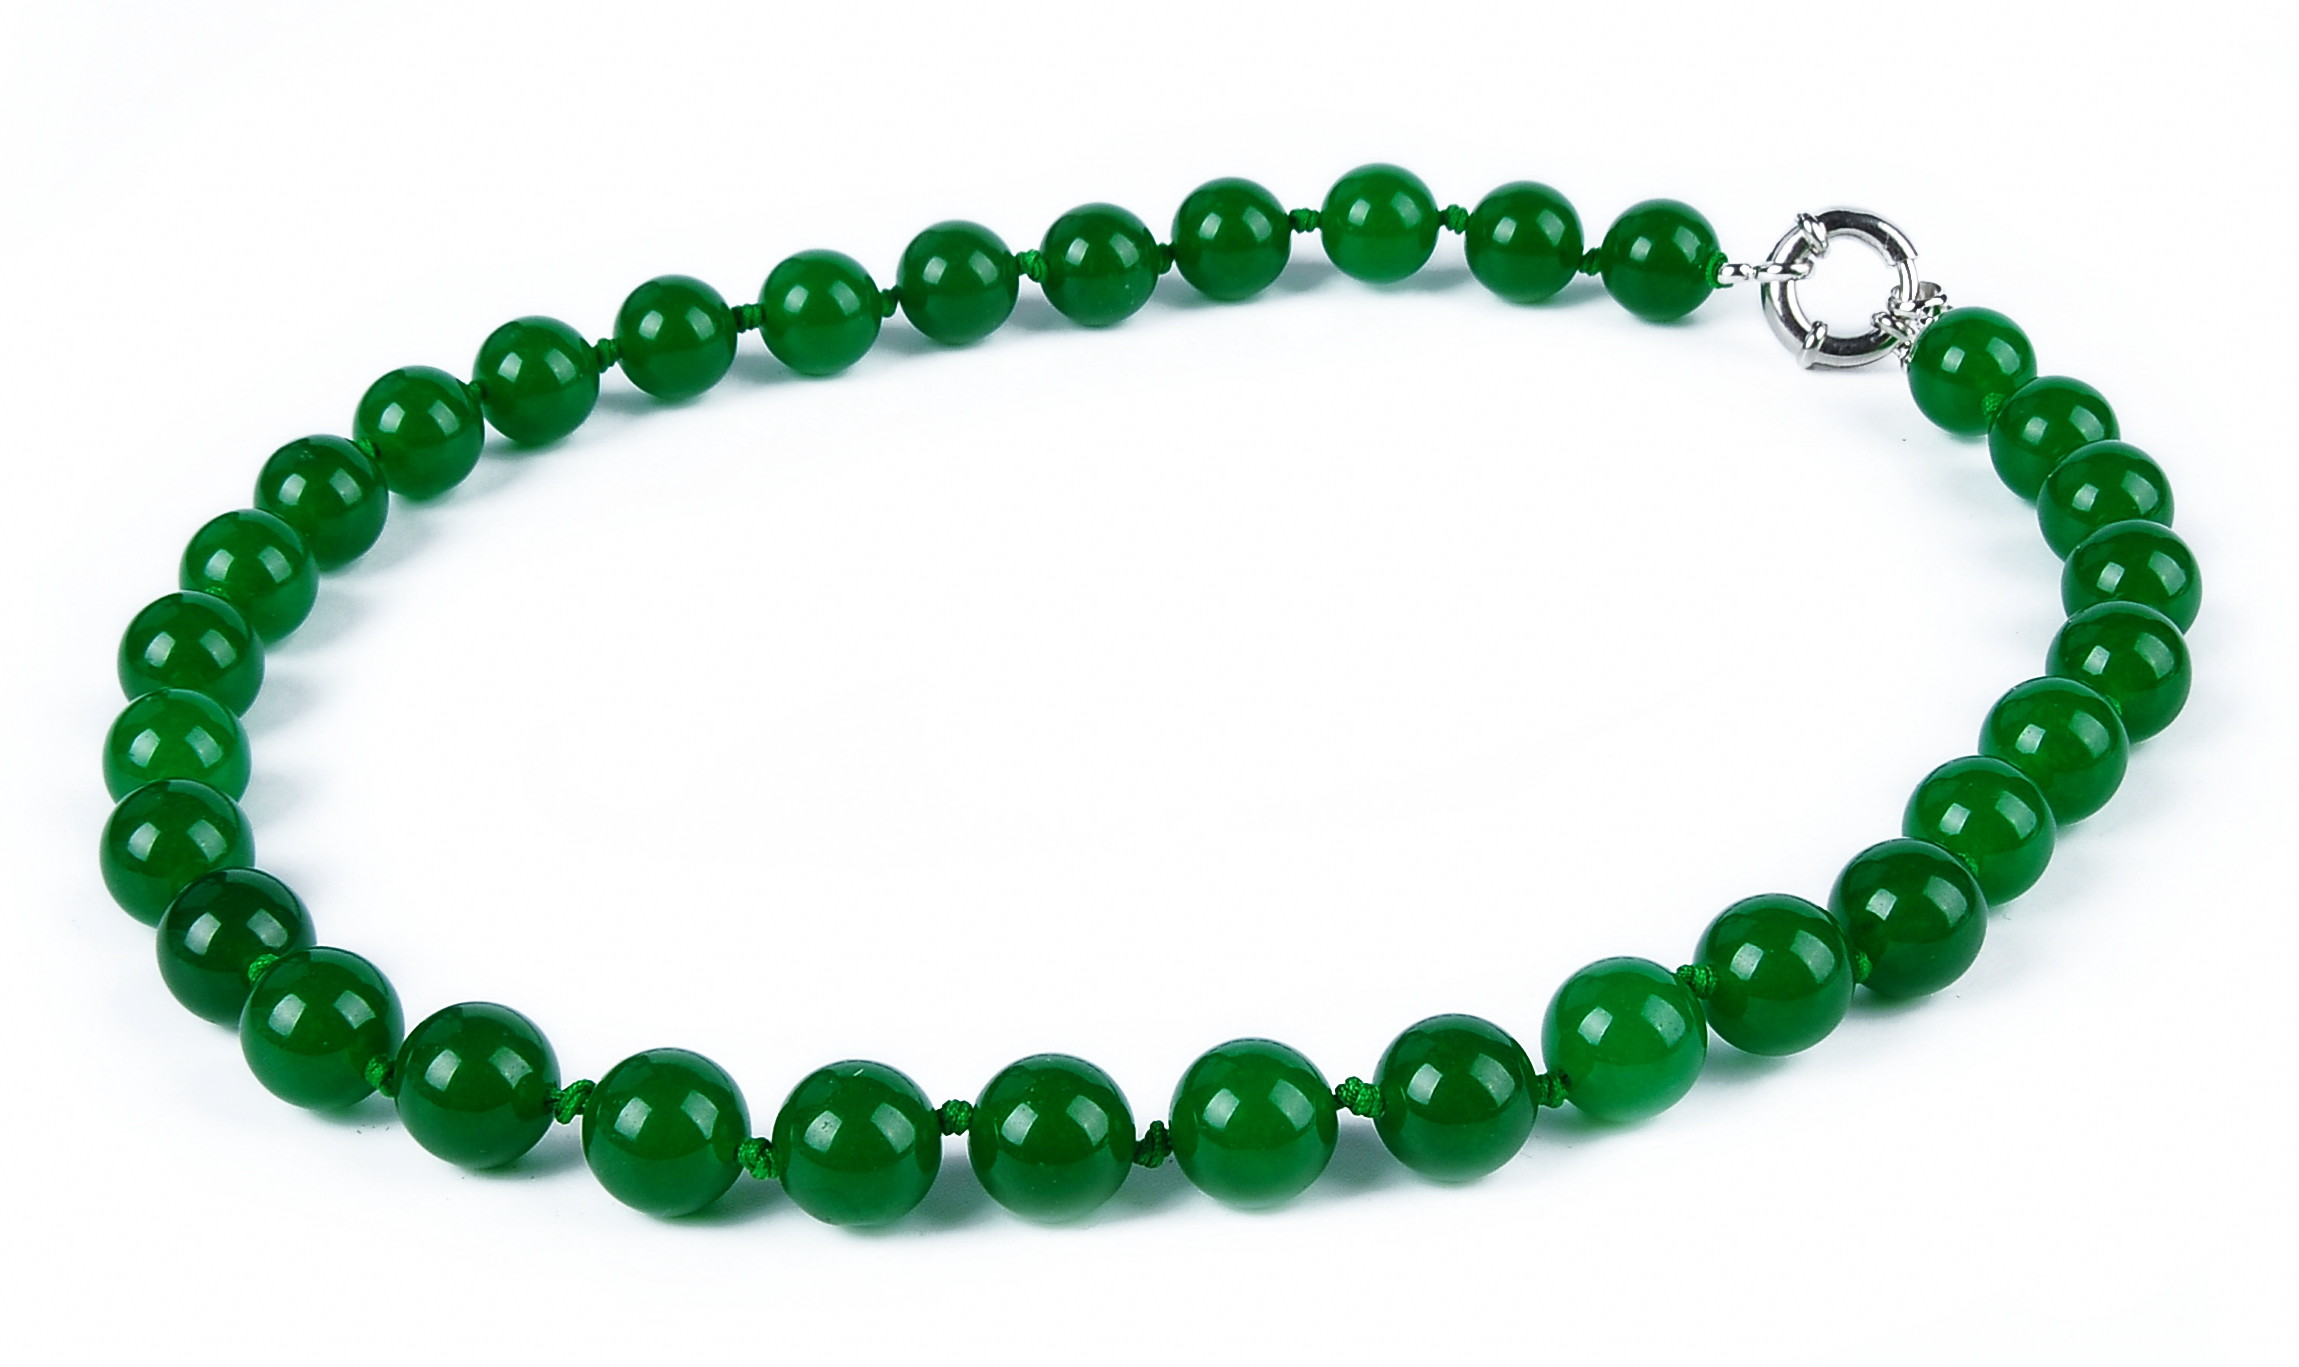 mm modern for antique at online genuine bracelets inside jadeite sc bracelet jade chinese diameter sale auction